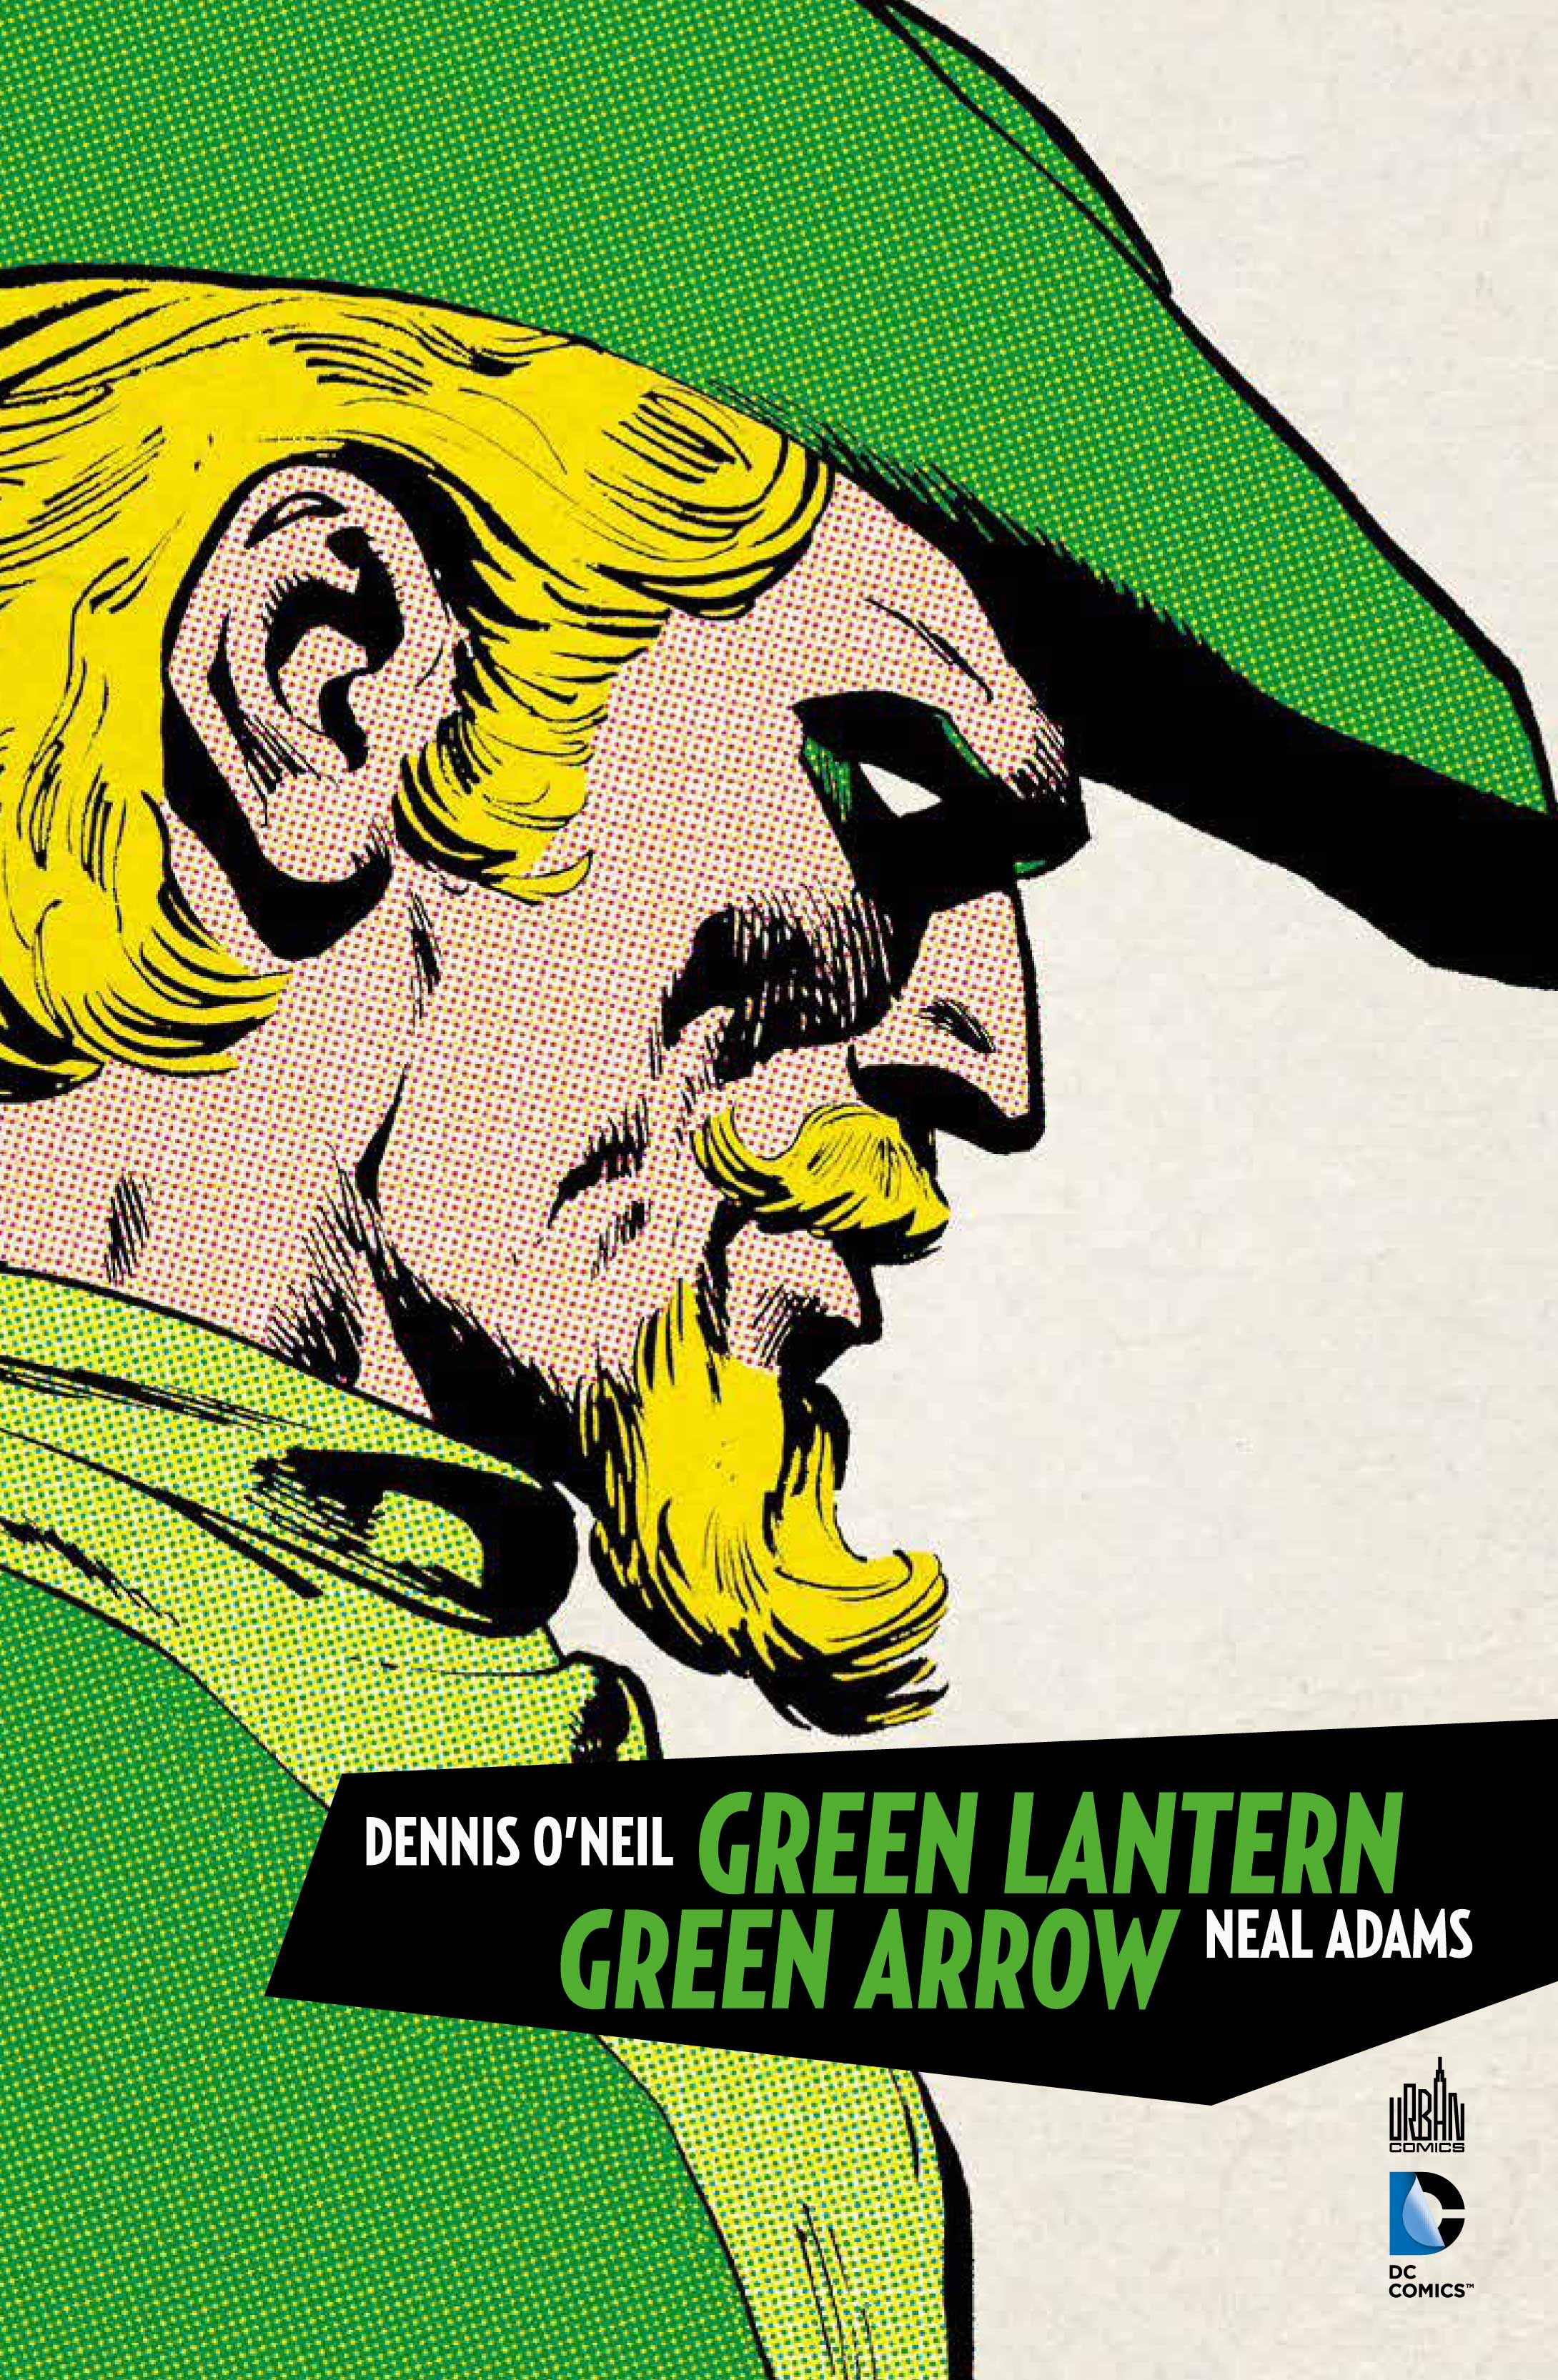 Green Arrow & Green Lantern 1 - Green Arrow & Green Lantern